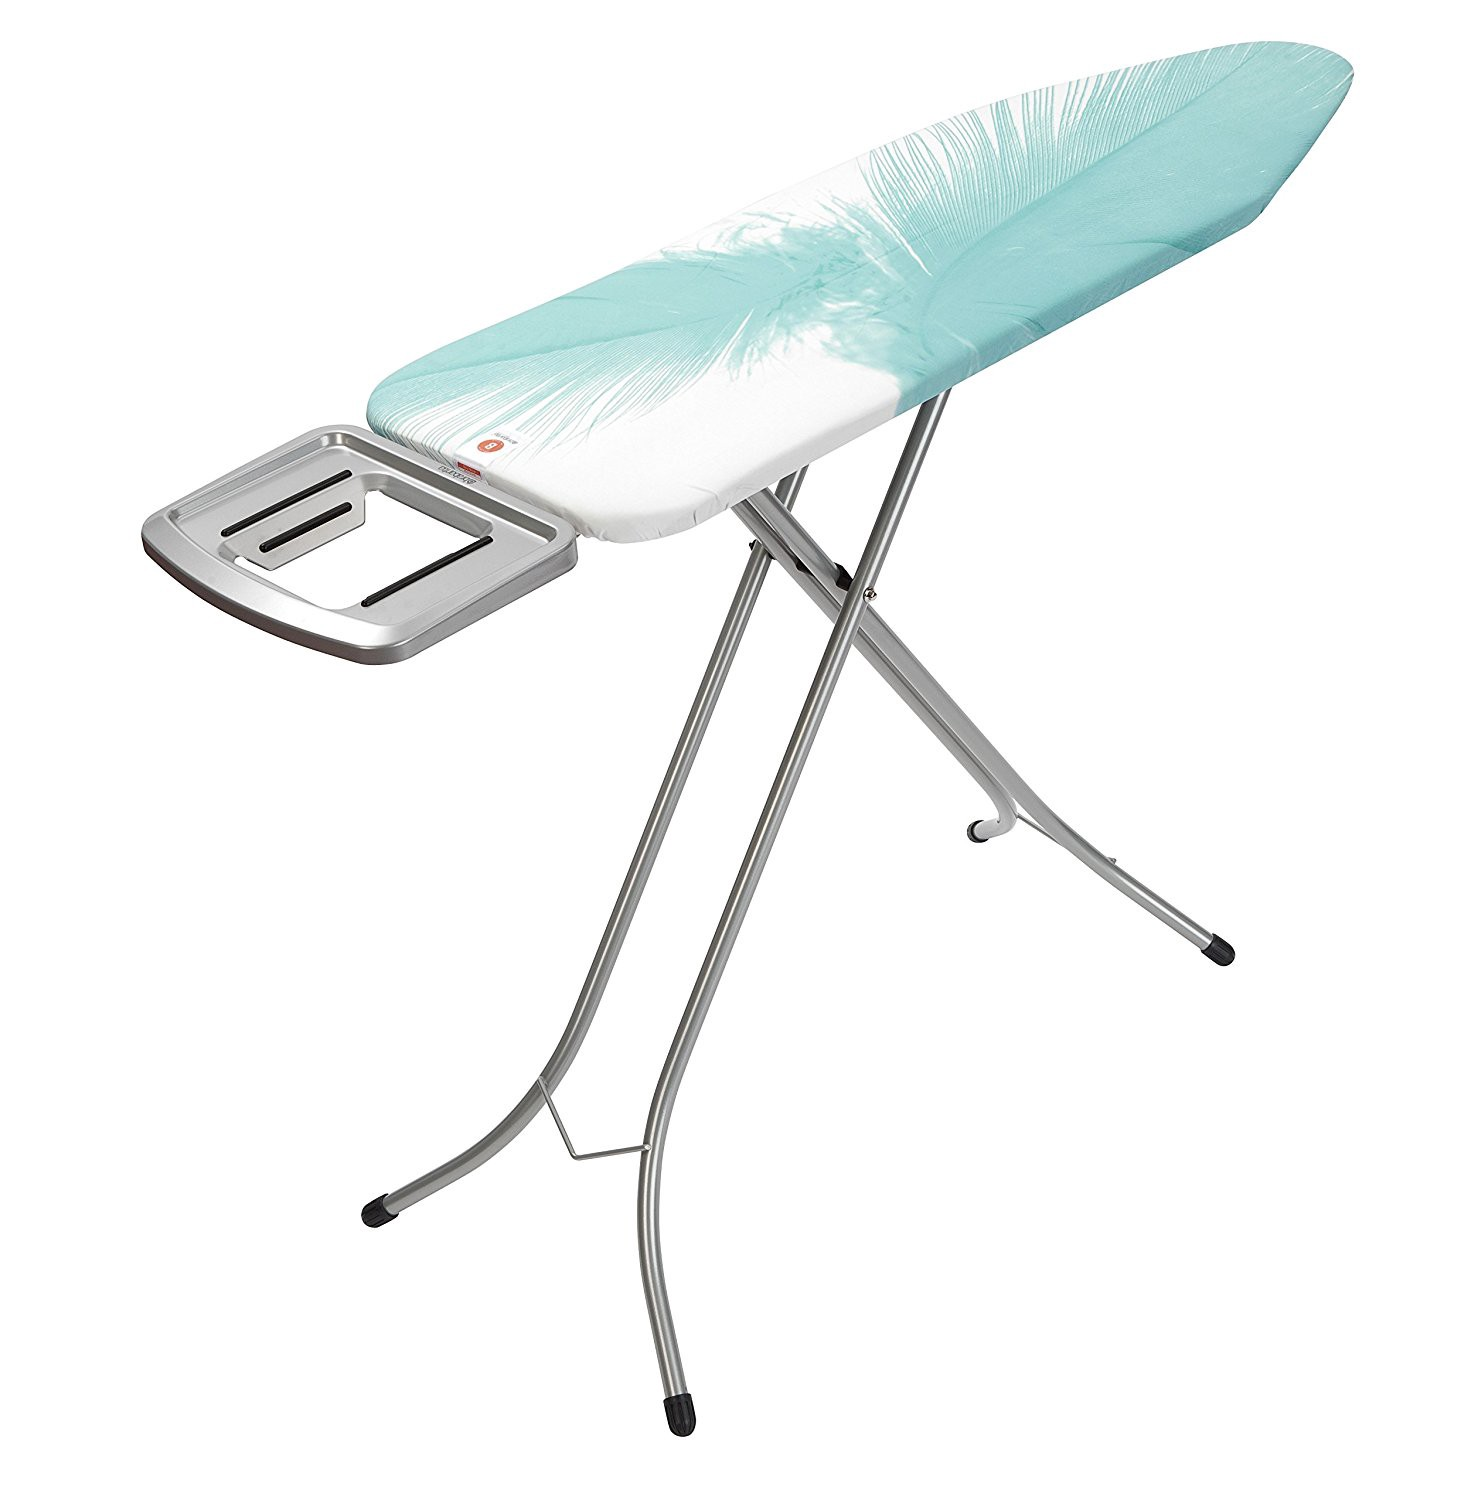 Buy It For Life 106 Products You Can Once And Keep Forever Fuel Pump Yamaha Rhino 92 Ironing Board